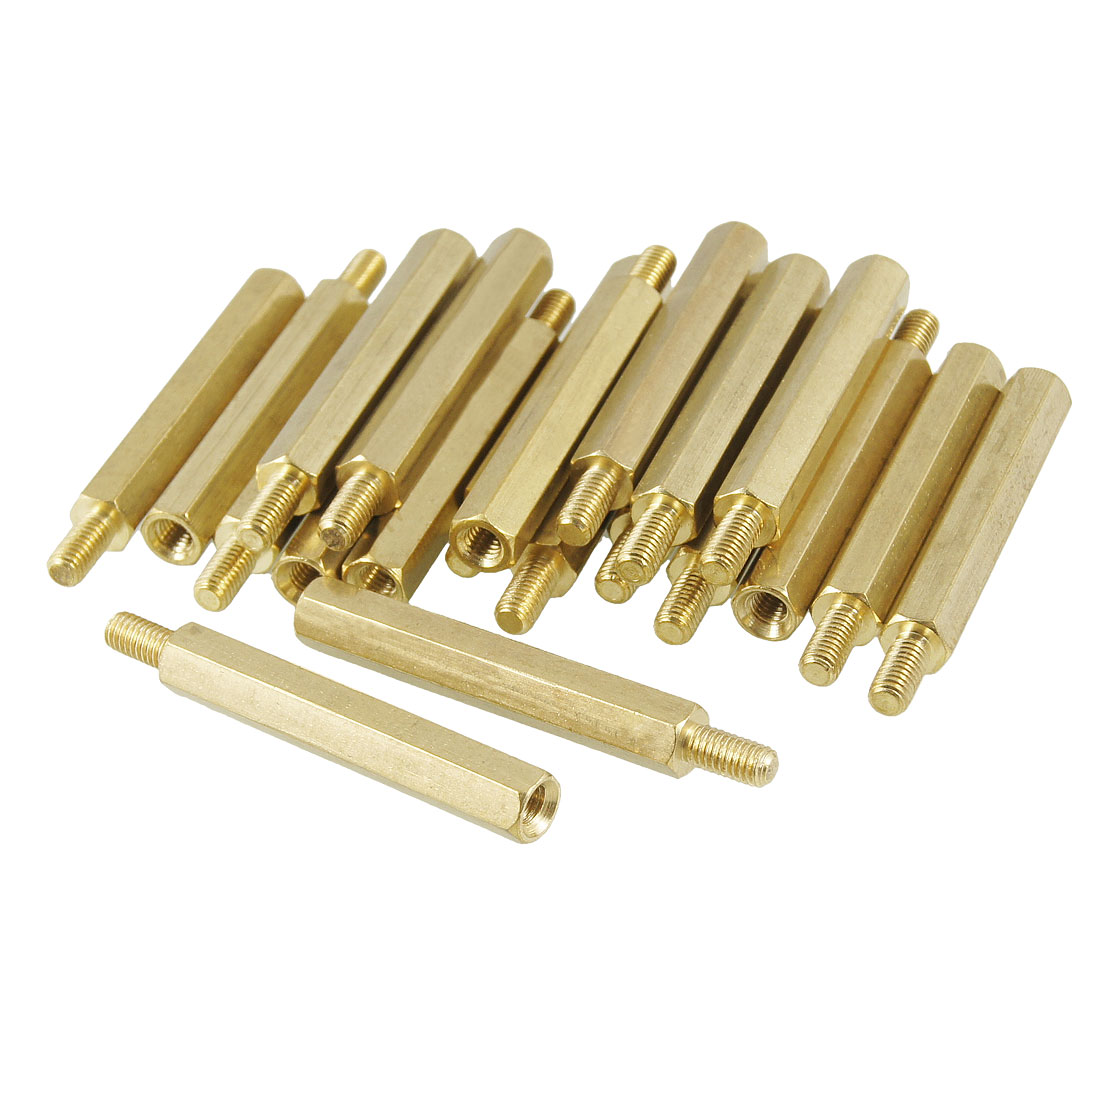 30mm Body Gold Tone Plated Brass 3mm Male-female Thread PCB Spacer Surpport 20 Pcs